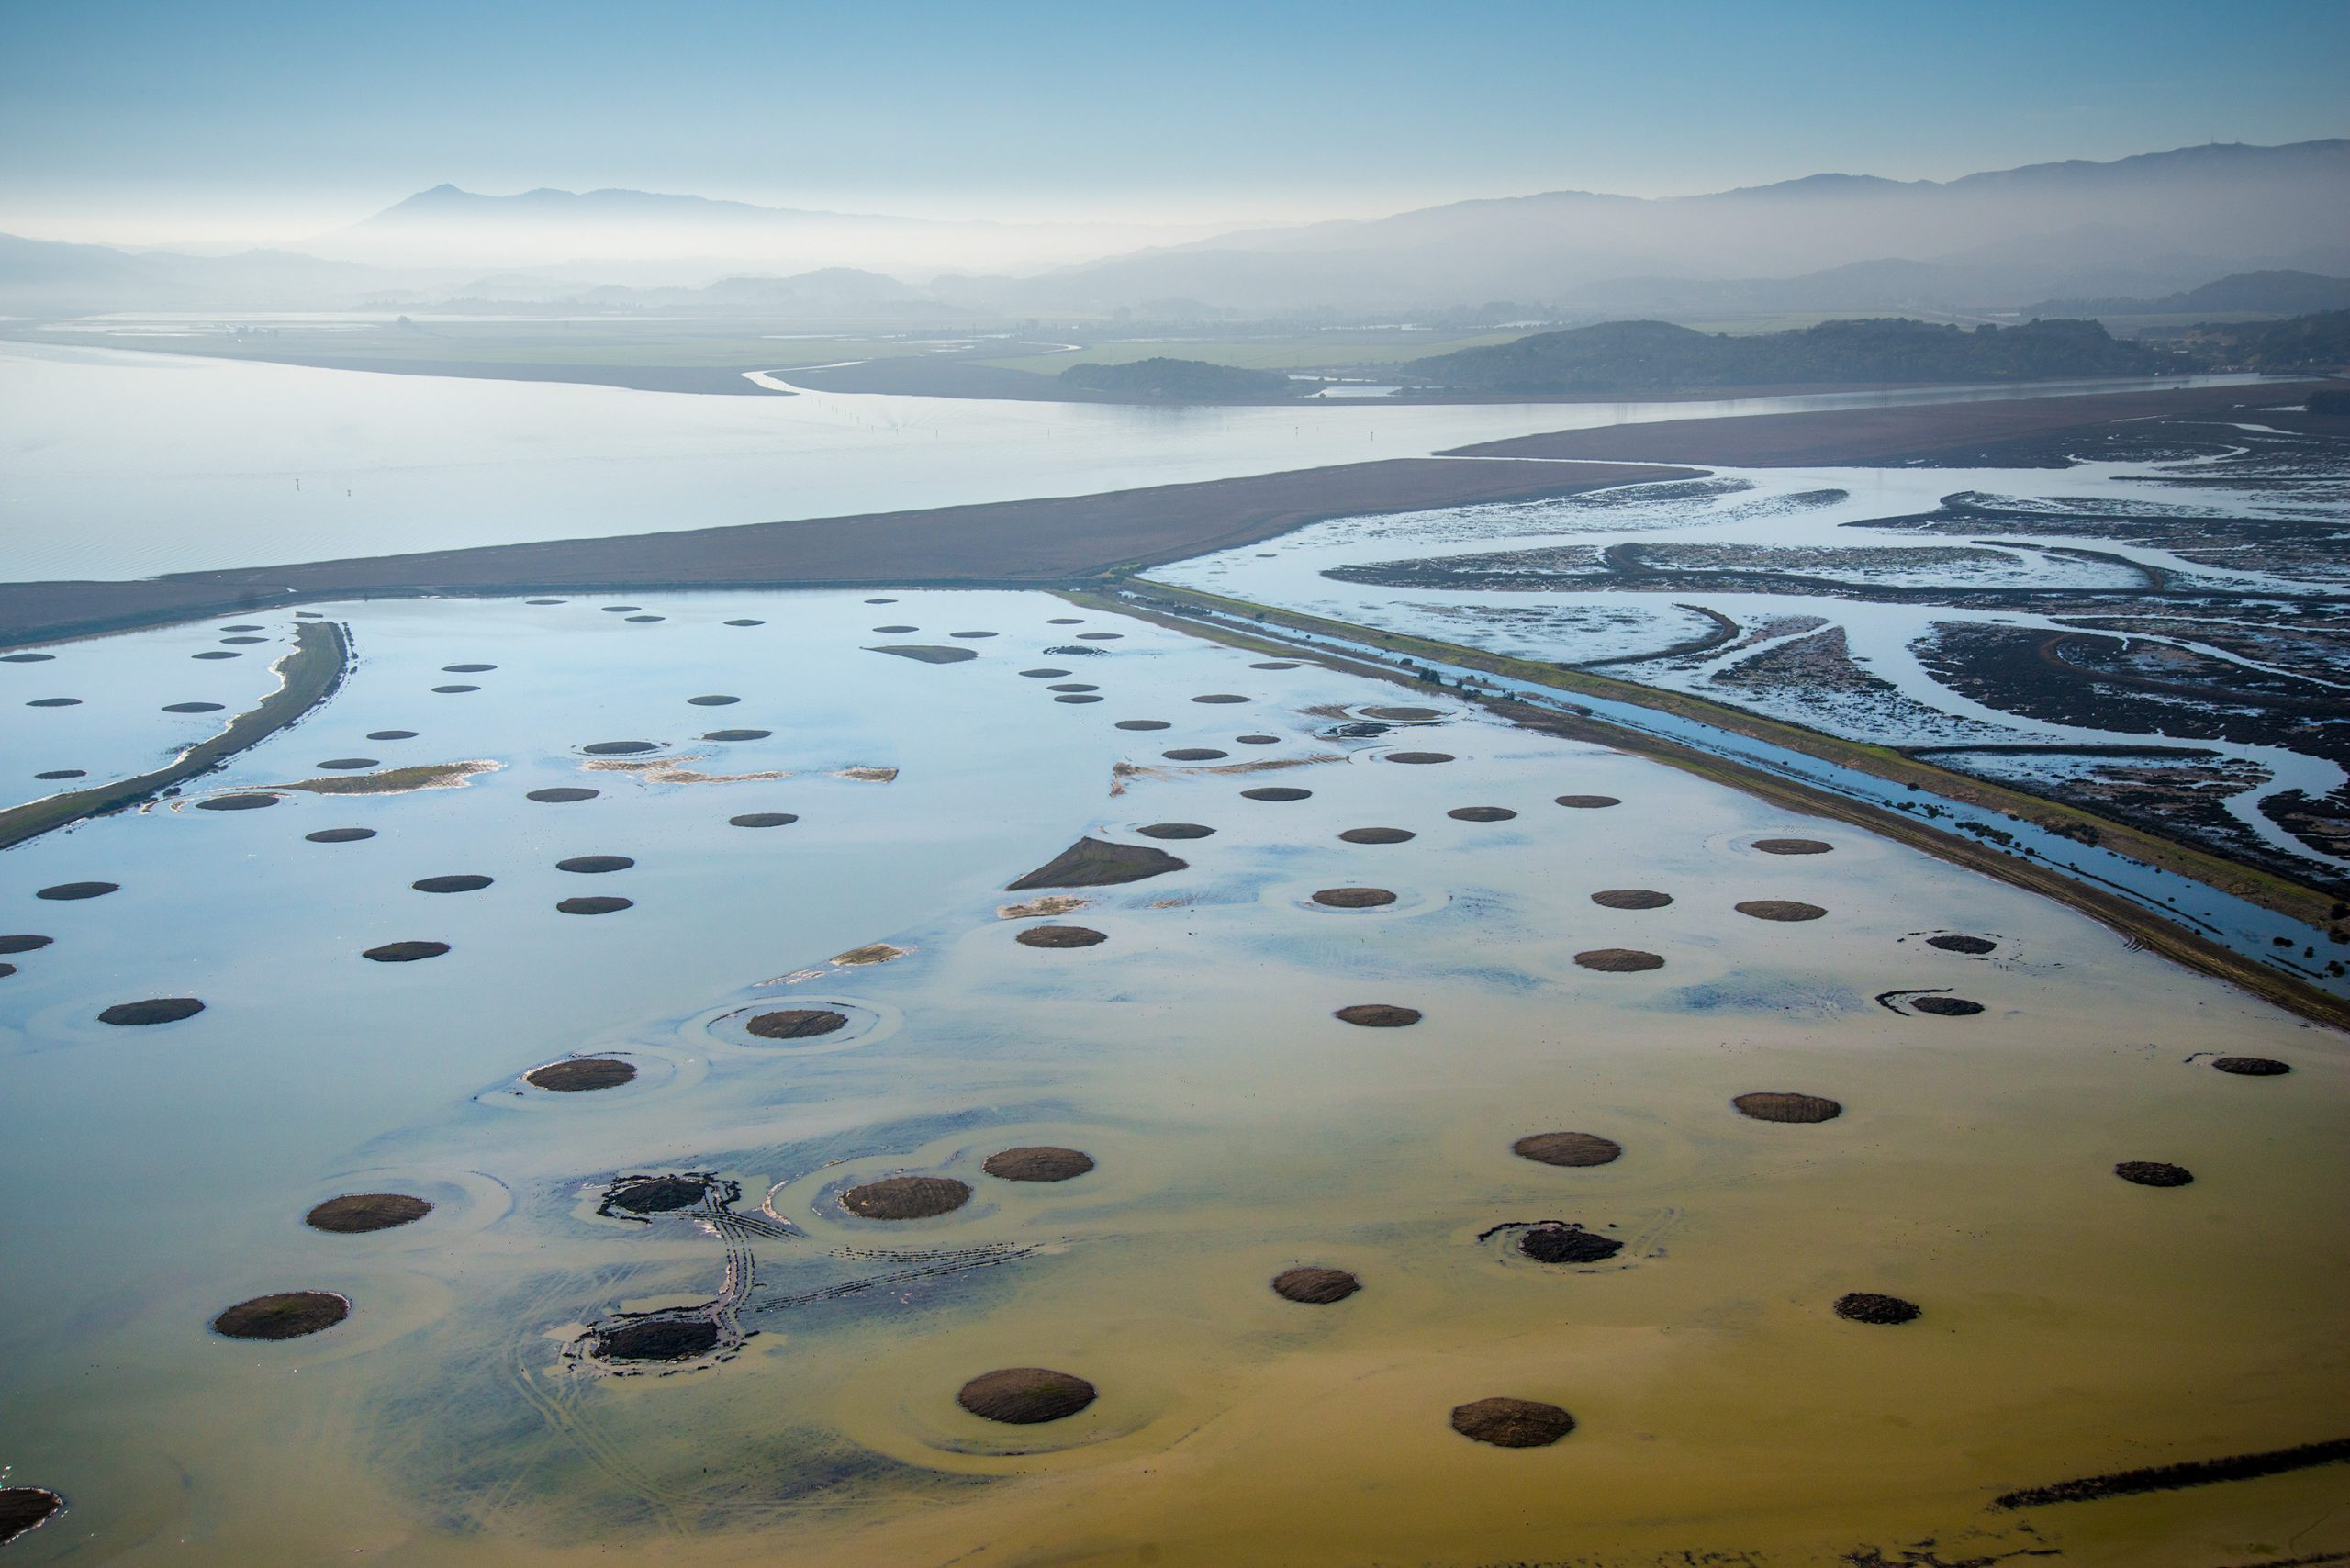 Sears Point is the site of a Natural and Nature-Based Features wetland restoration project by the U.S. Army Corps of Engineers in San Pablo Bay, Sonoma County, Calif. Photo by U.S. Army Corps of Engineers.